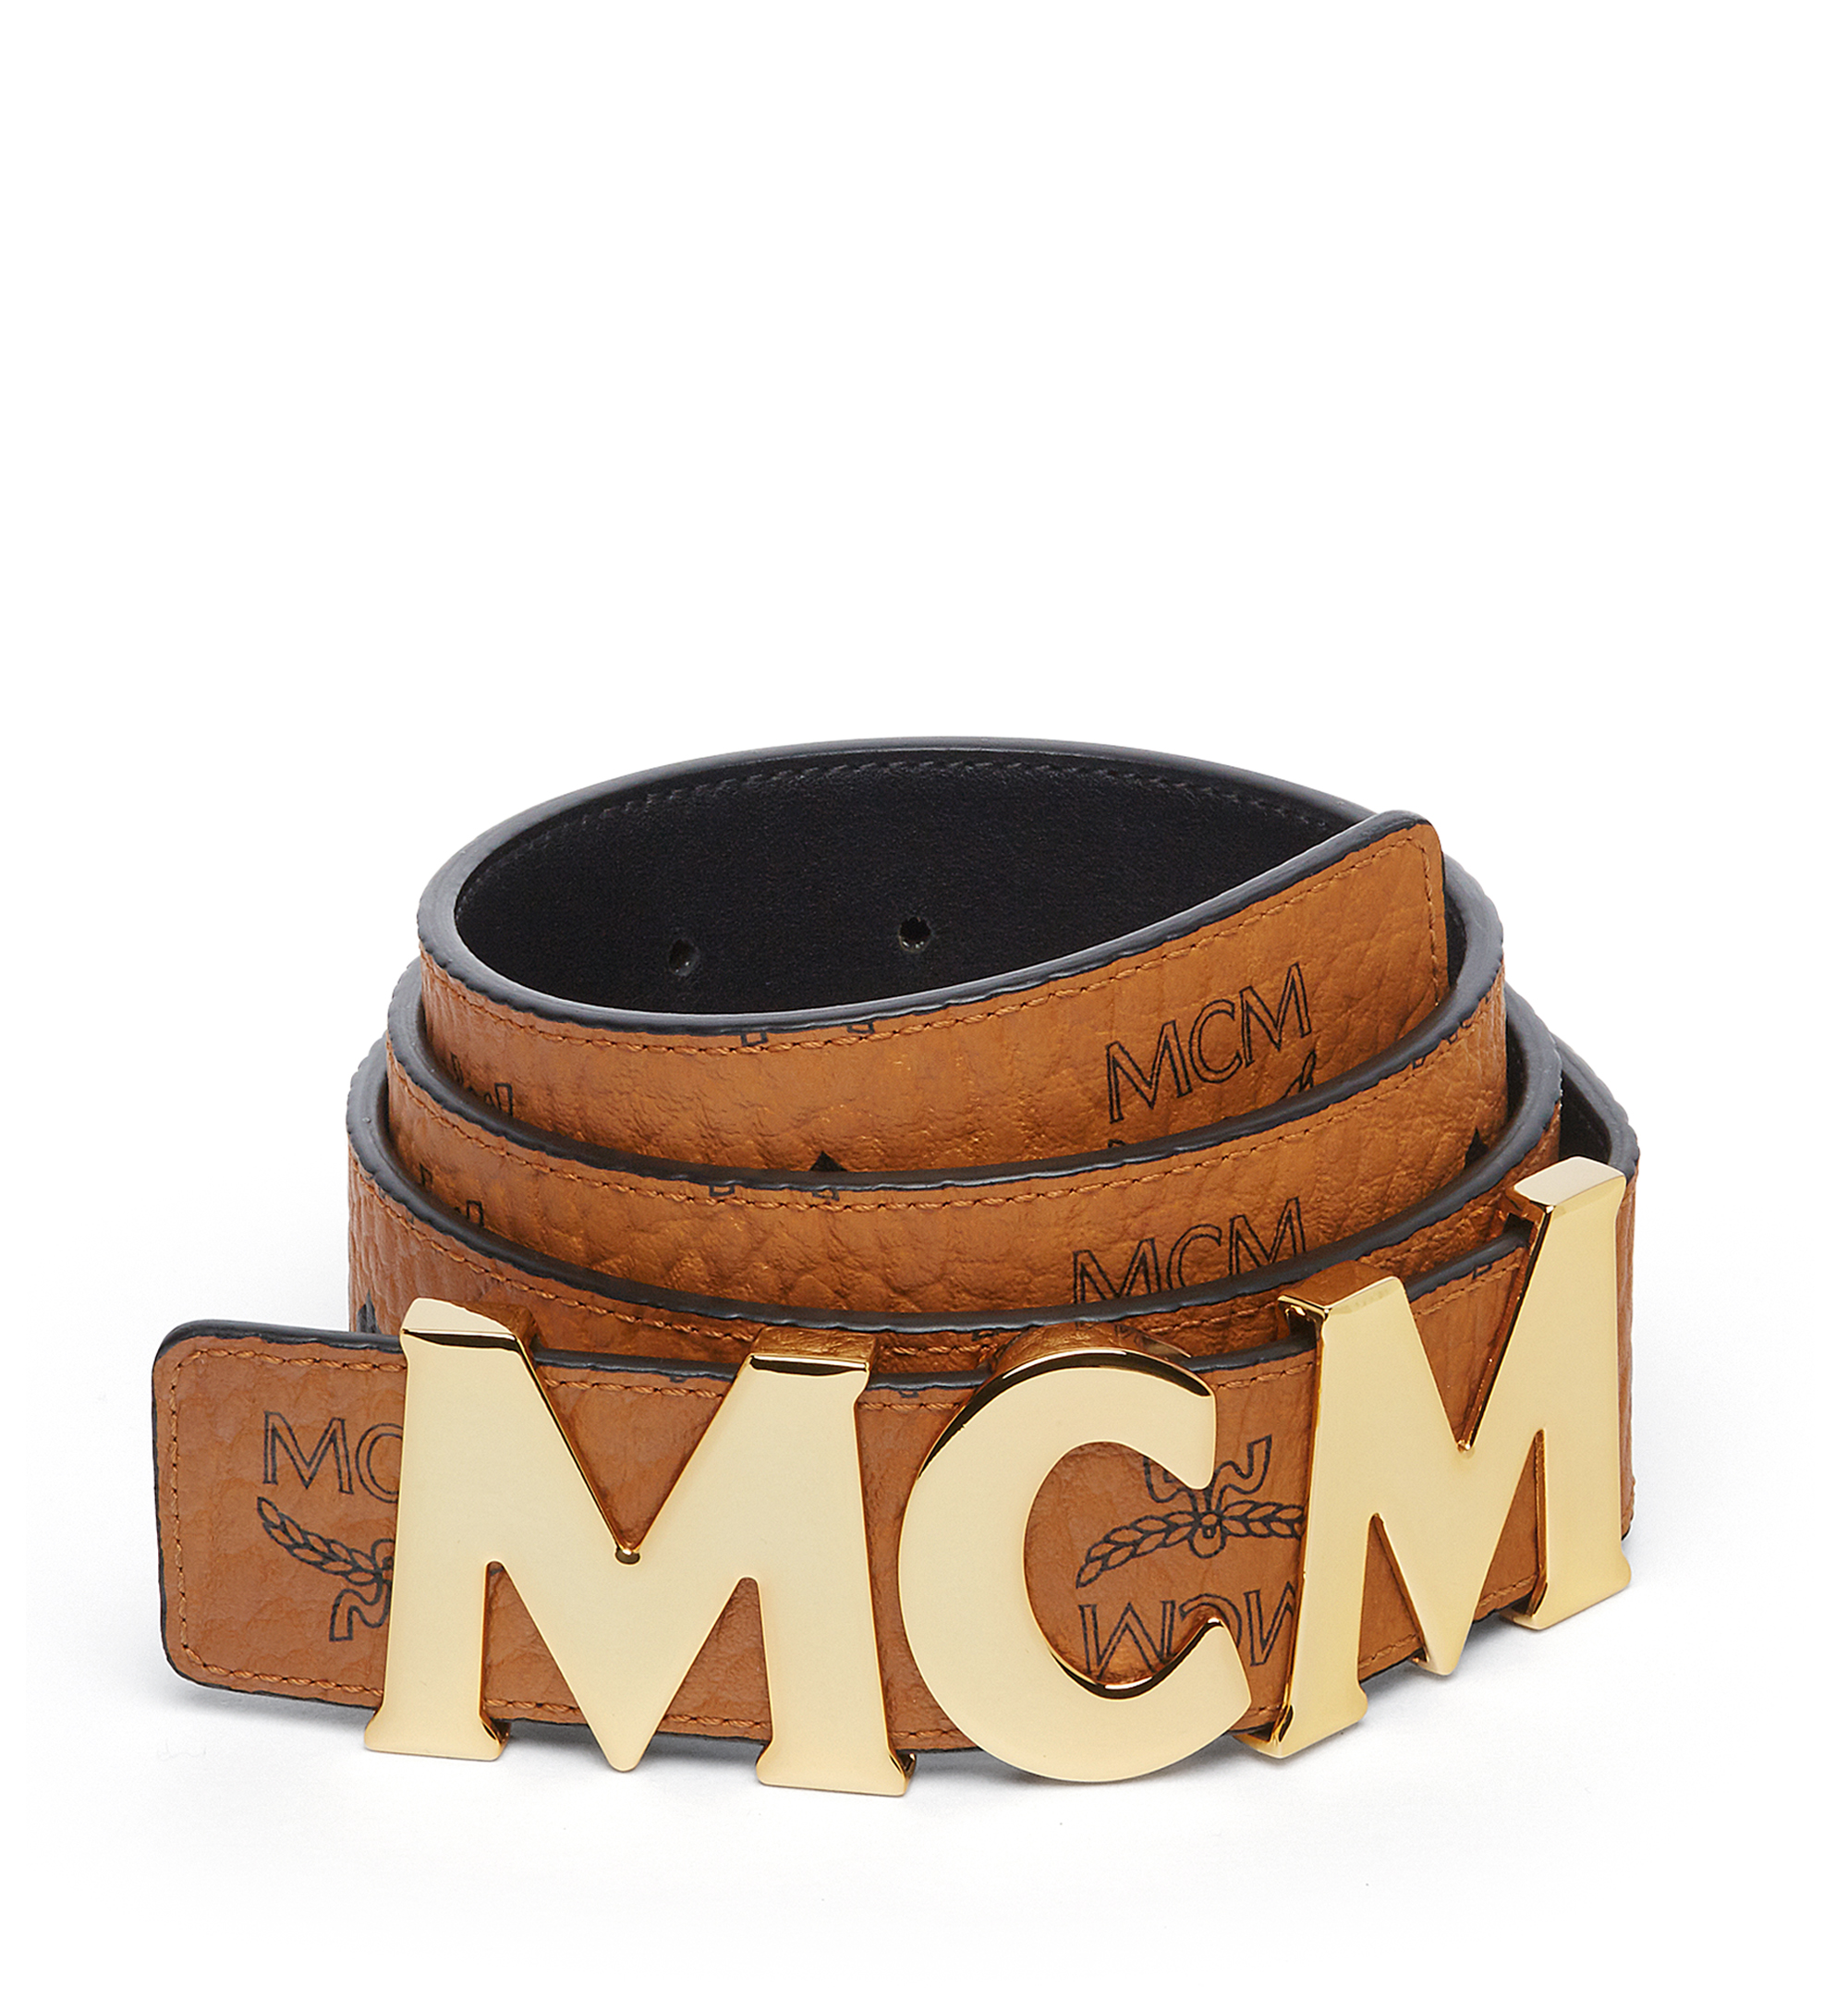 Mcm Letter Belt 1 5 In Visetos Mcm Shop 47 top mcm men's belts and earn cash back from retailers such as bloomingdale's, east dane, and mcm worldwide and others such as nordstrom and saks fifth avenue all in one place. mcm letter belt 1 5 in visetos